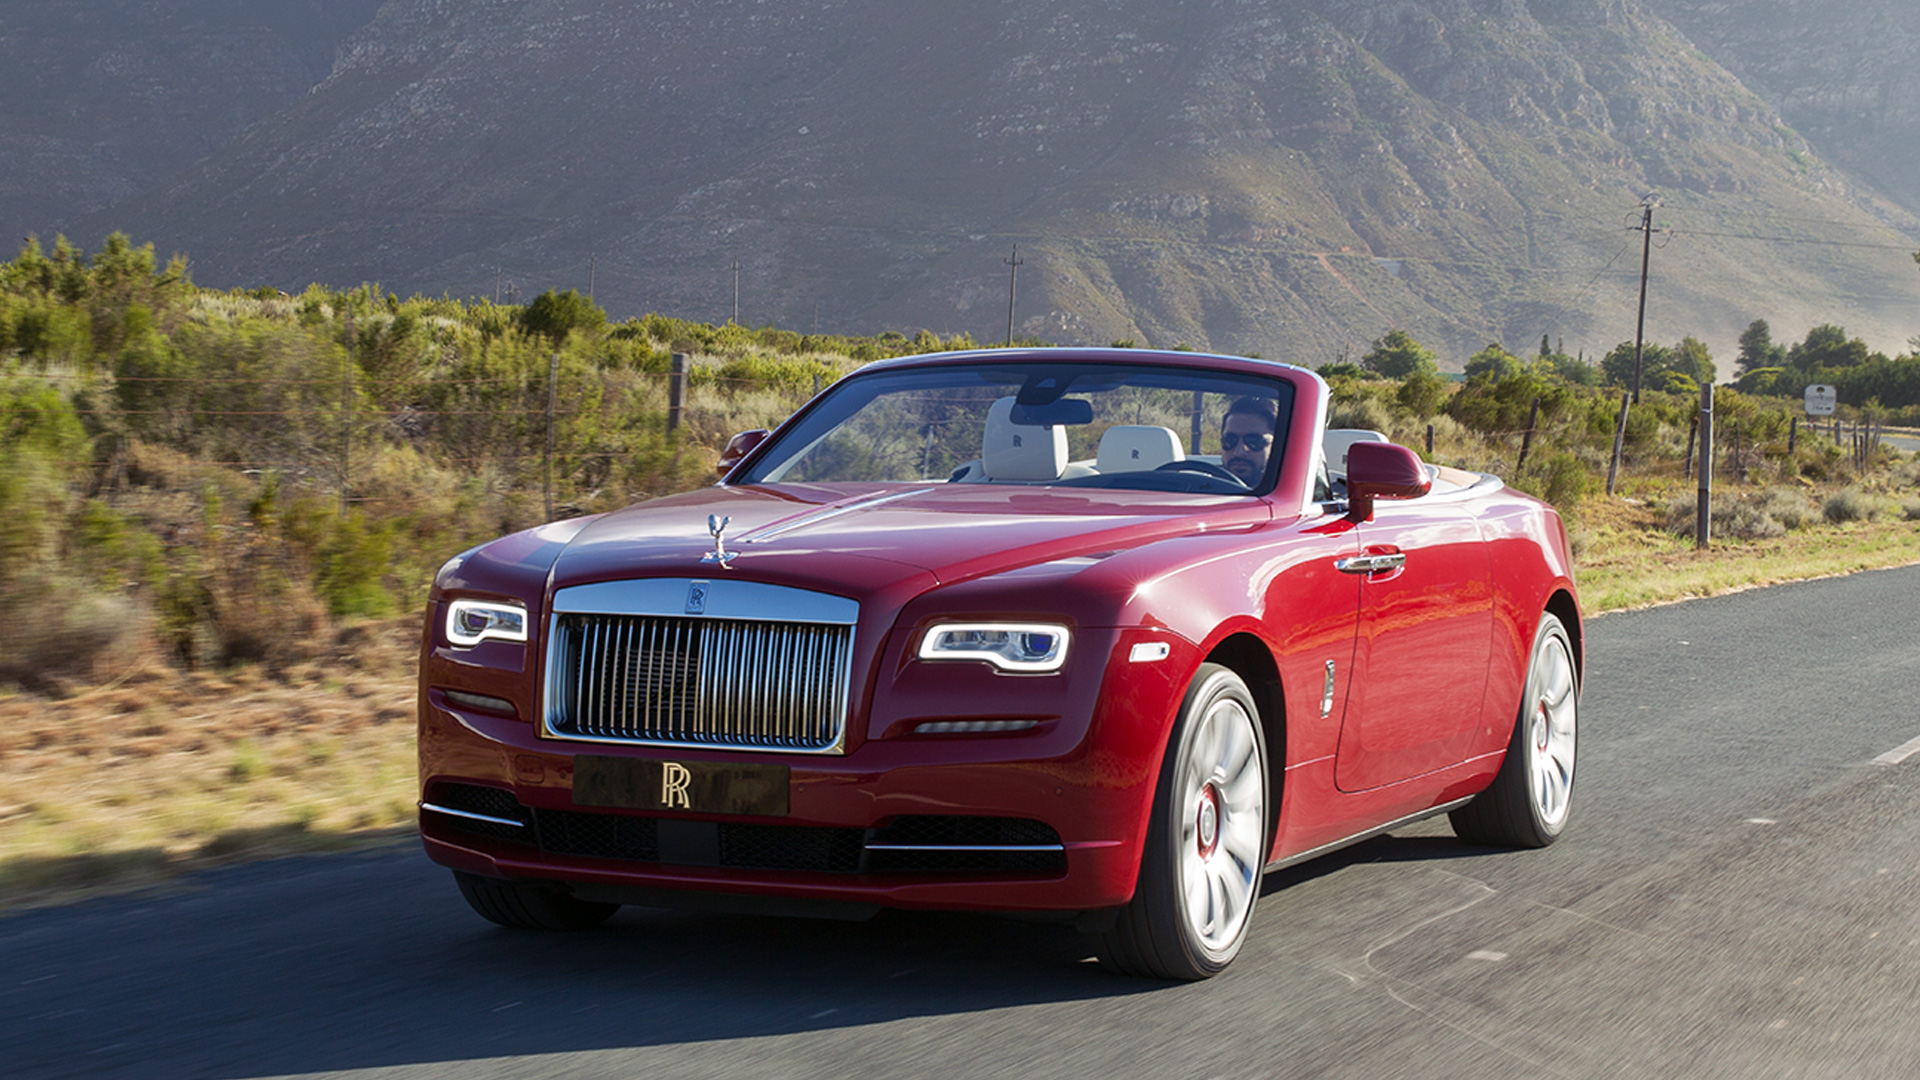 Rolls Royce Dawn 2016 STD